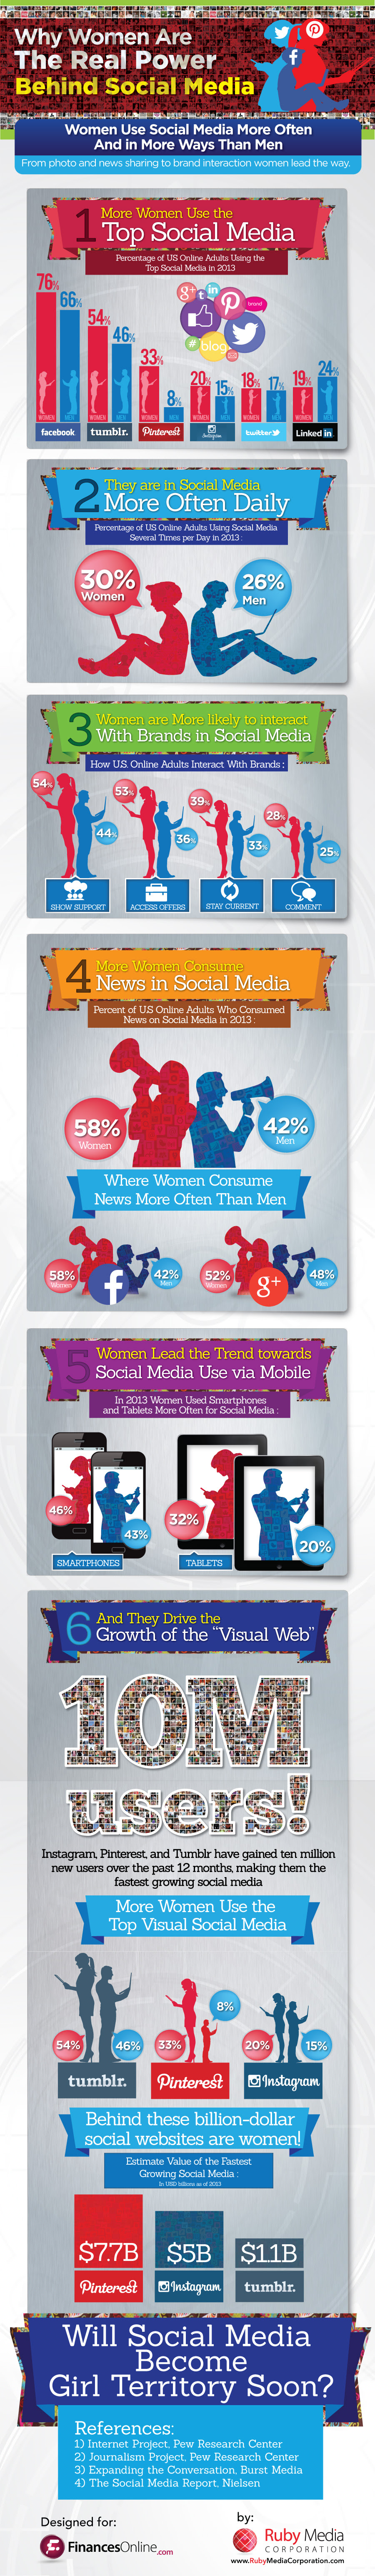 Top Social Media Data Anaylis Reveals How Influential Women Have Become